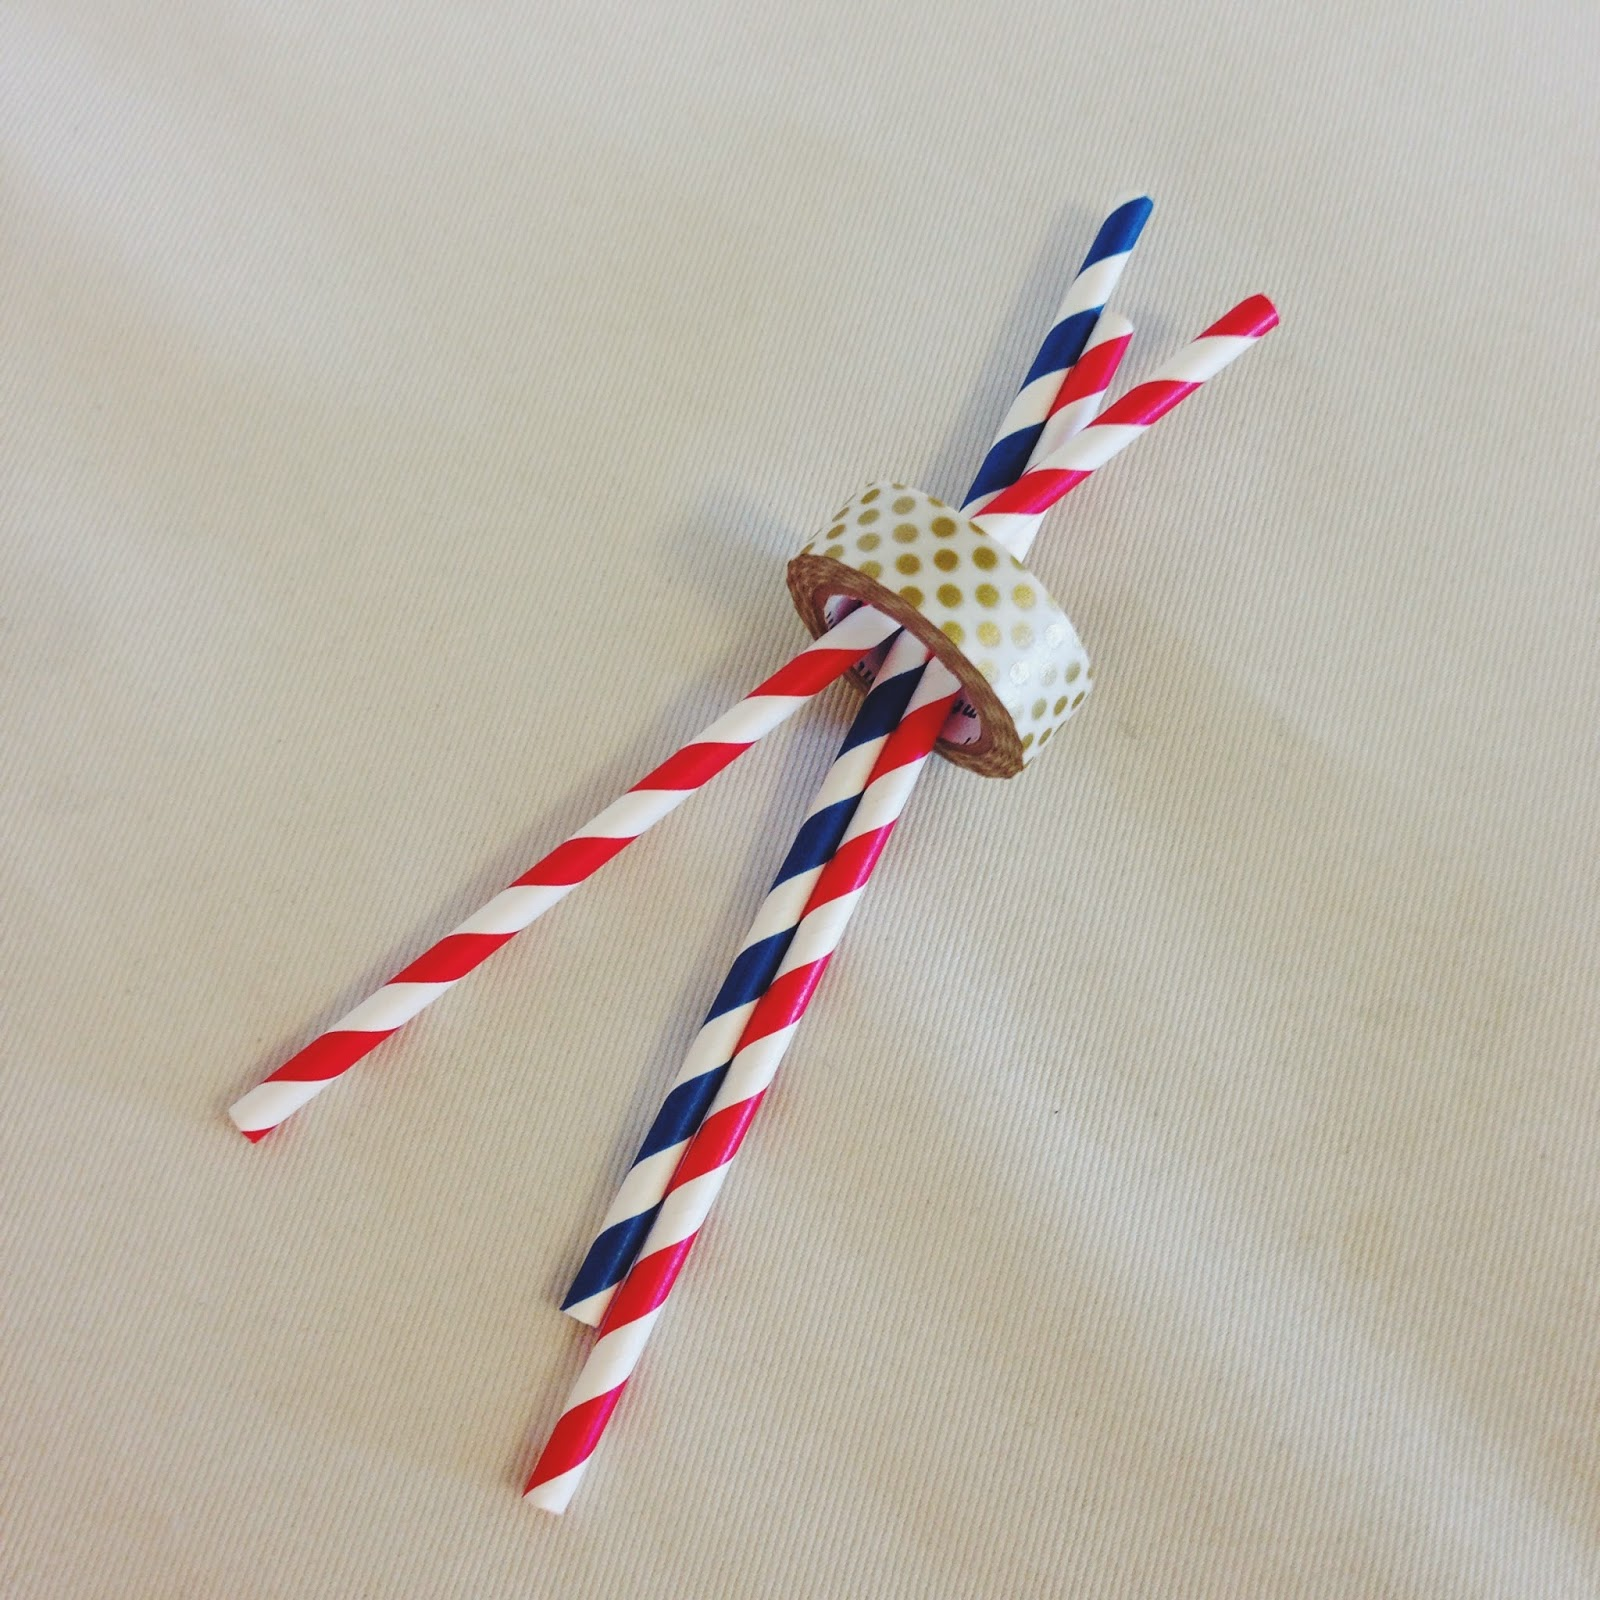 washi tape 4th of july decorations, party, diy